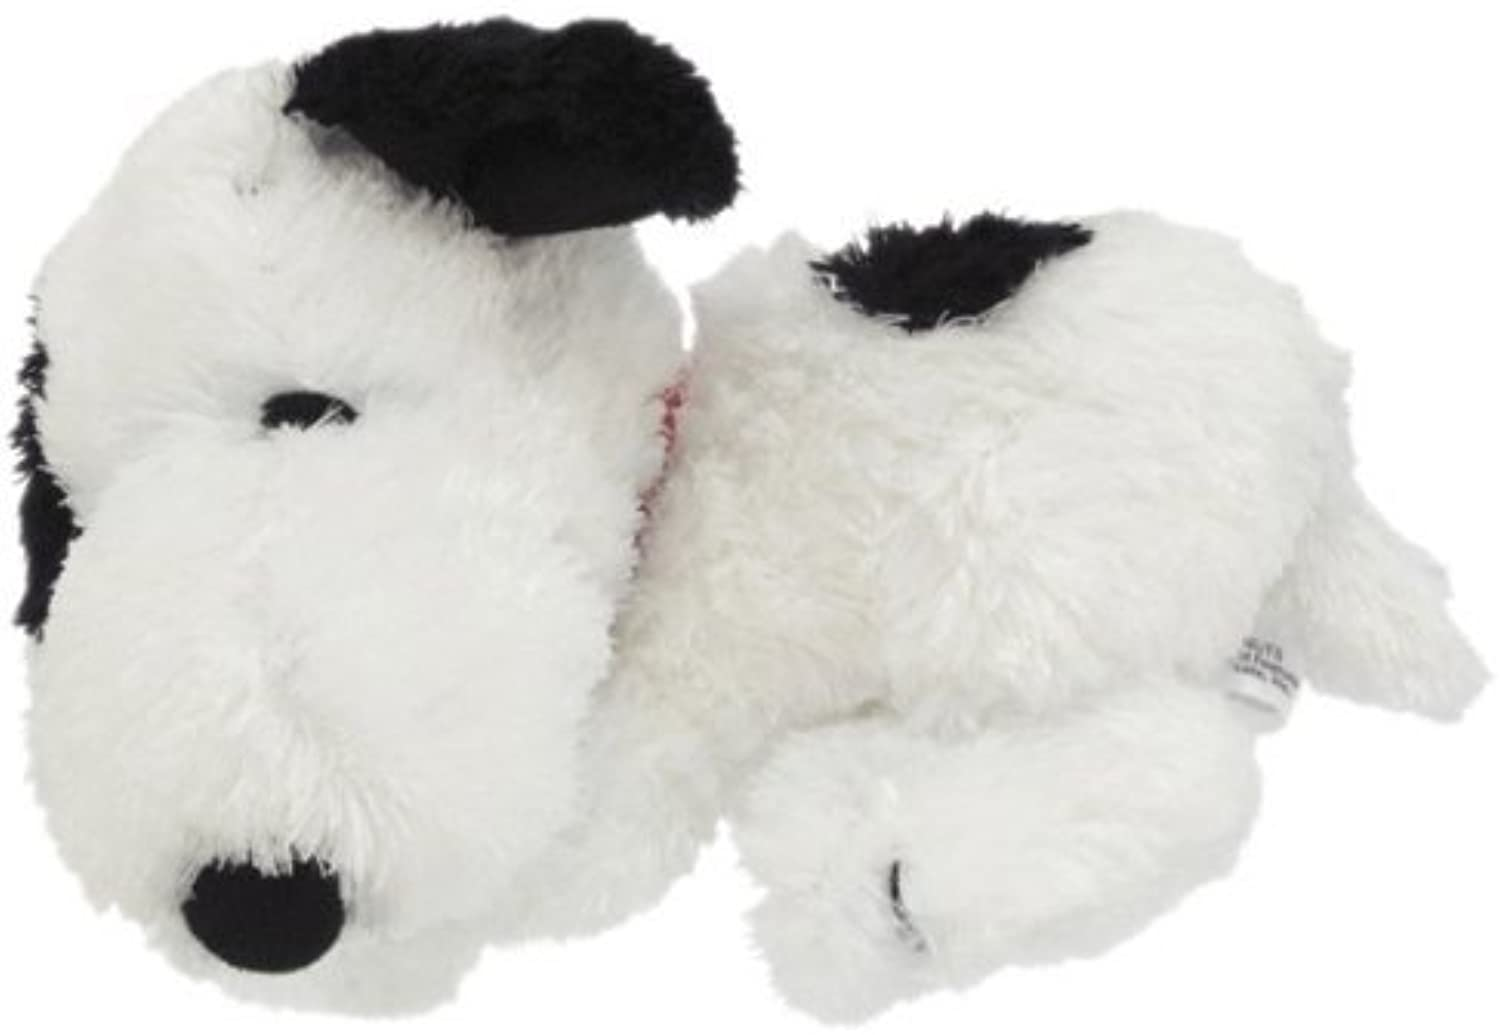 6 long and 3 tall Snoopy plush doll laying down by Snoopy